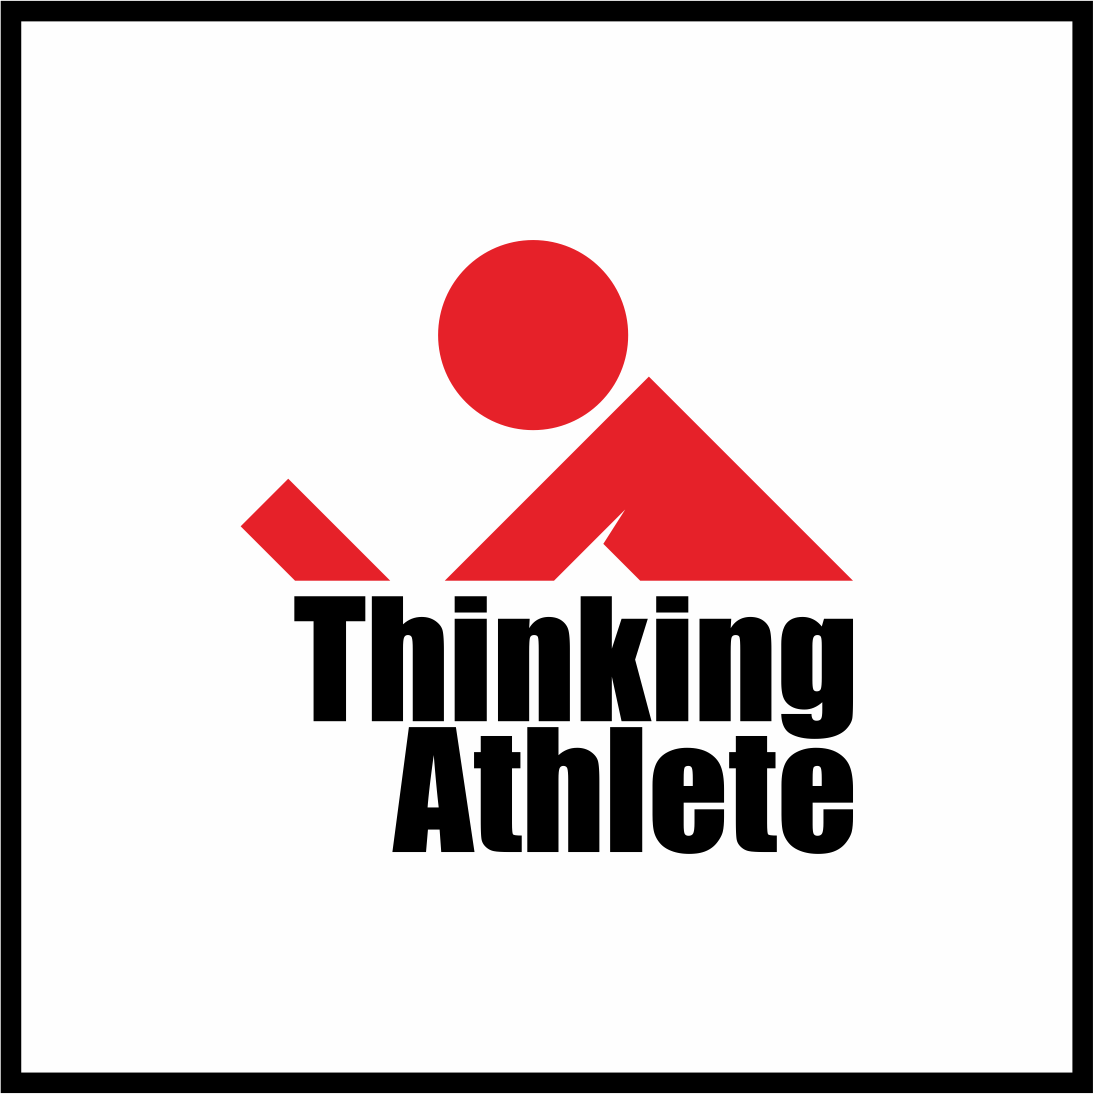 Logo Design by gdfd - Entry No. 74 in the Logo Design Contest Thinking Athlete Logo Design.